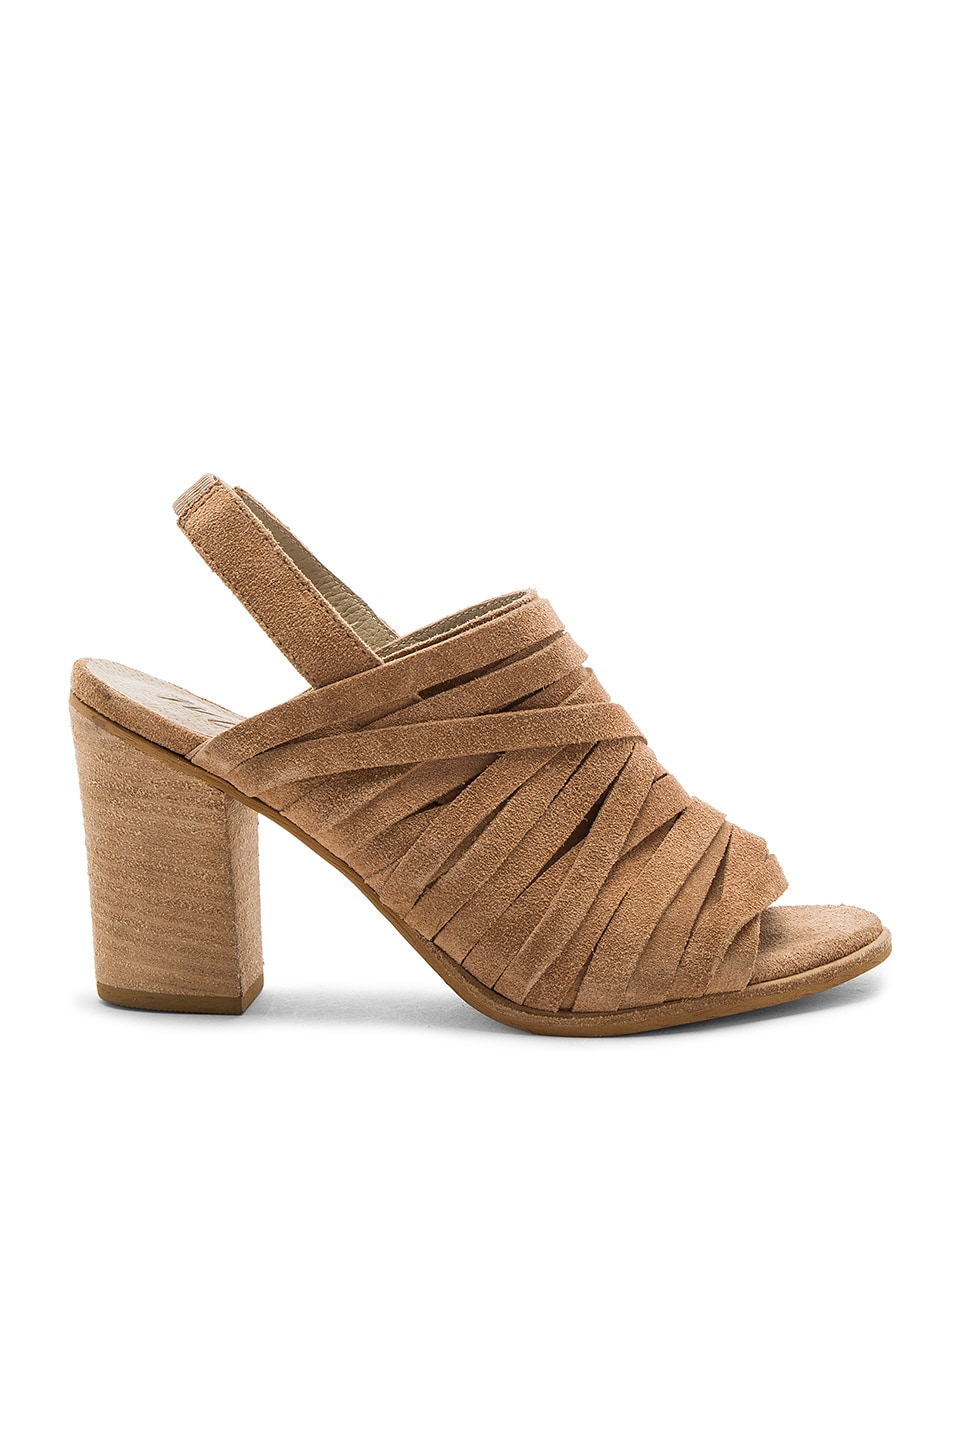 Matisse Mummy Heel in Natural